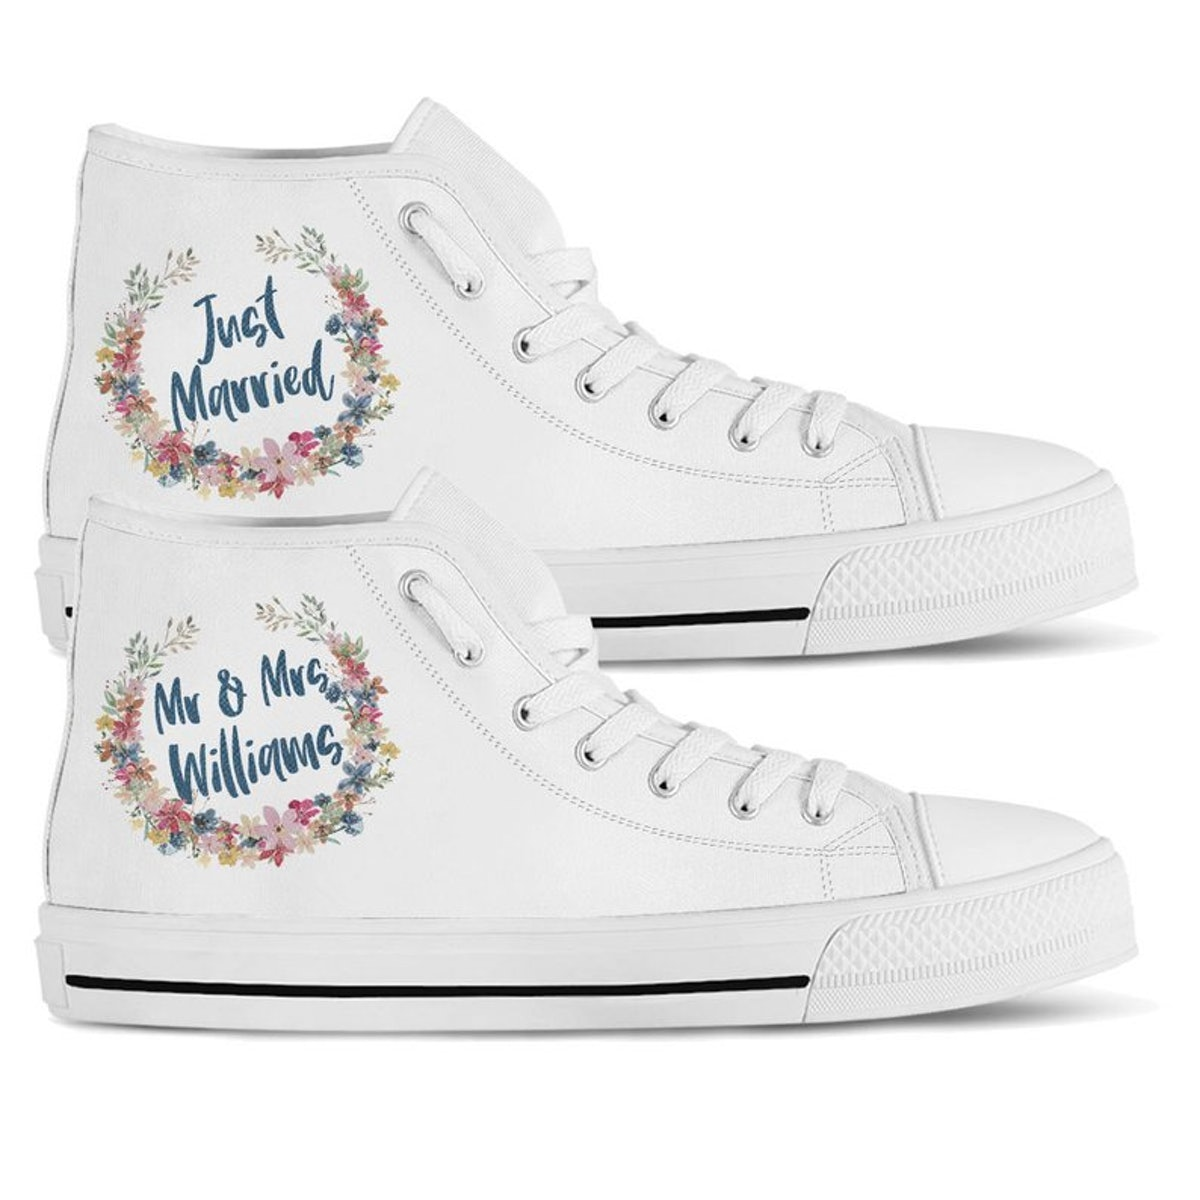 12 Personalized Wedding Sneakers, Because No Bride Wants Blisters On Her Big Day